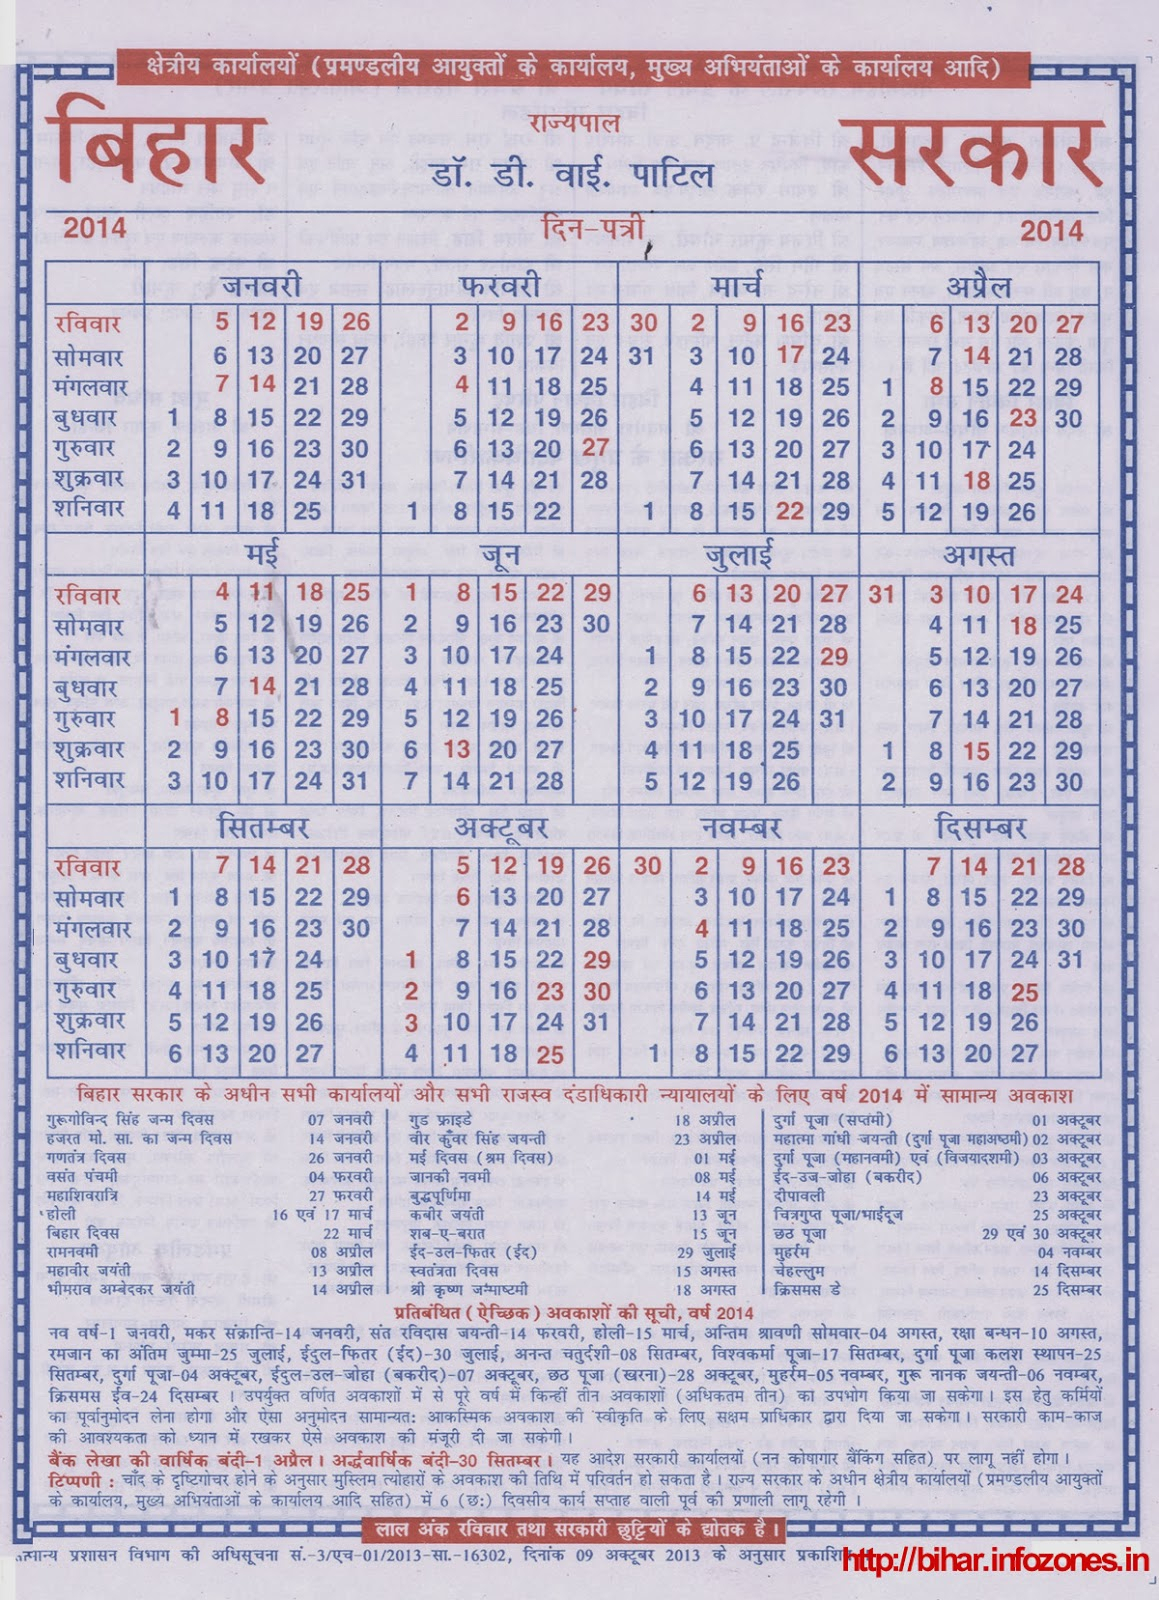 Bihar Government Calendar 2014 with regard to Bihar Government Holiday Calendar